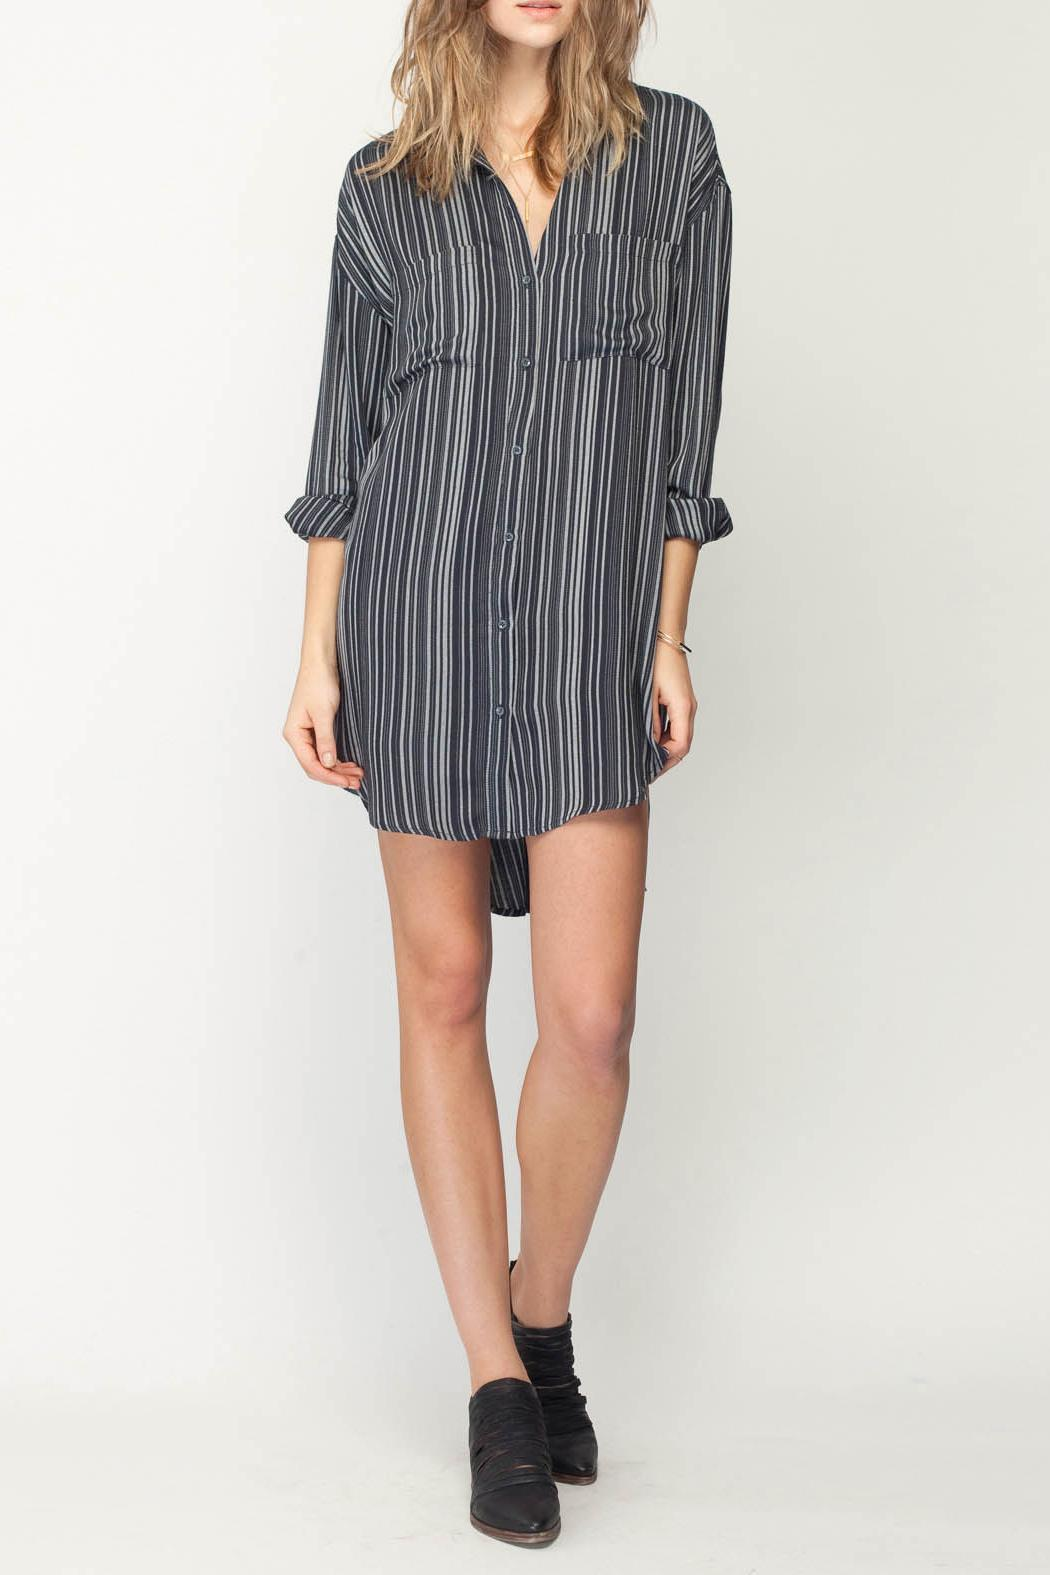 Gentle Fawn Voyage Sweater Dress - Main Image